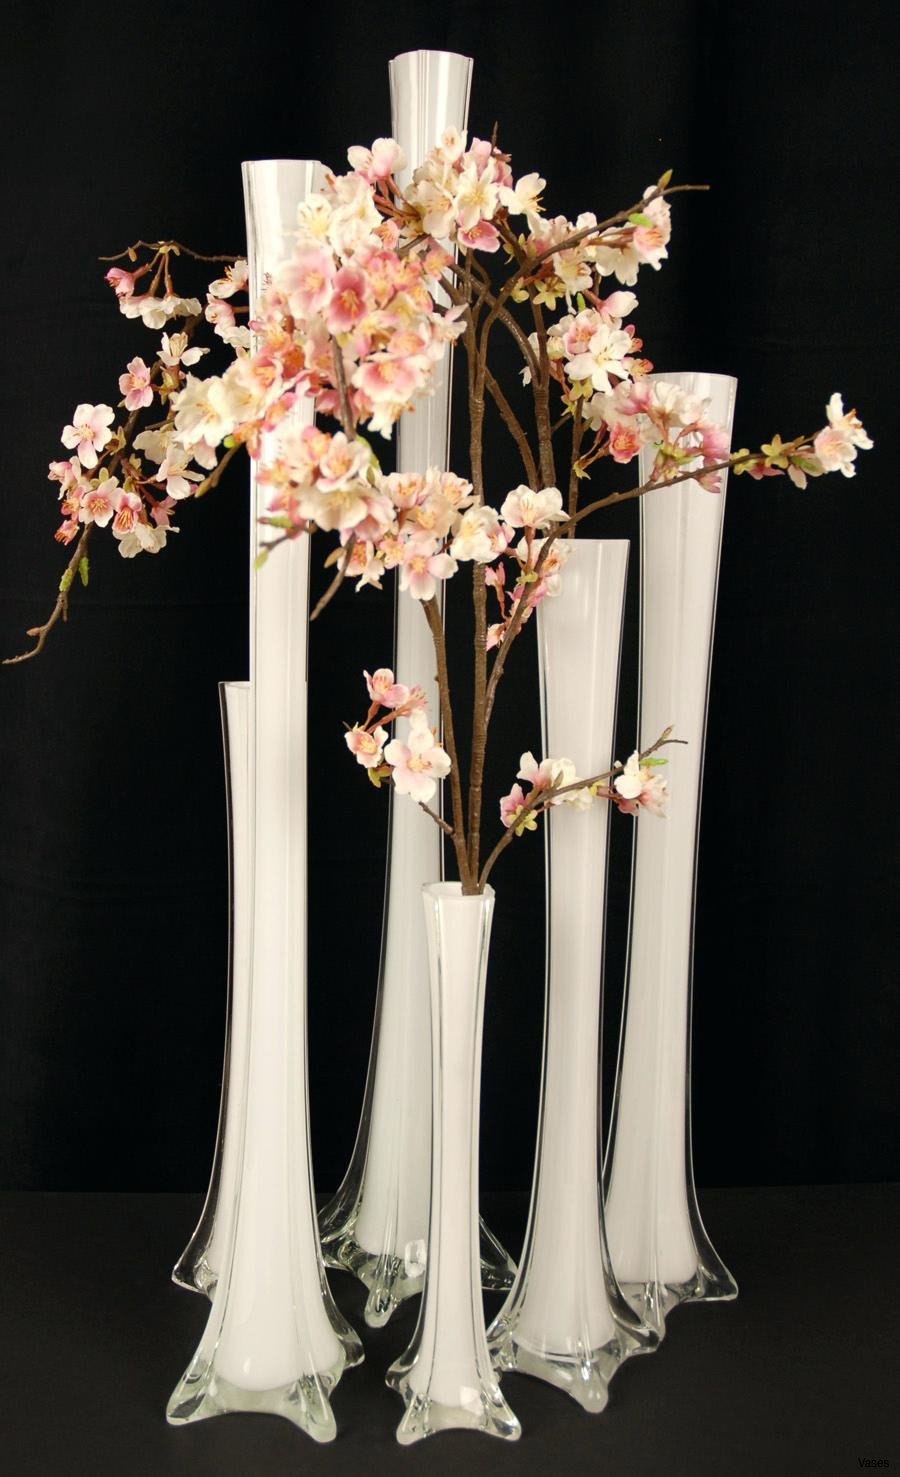 cheap plastic vases wholesale of vases plastic tower eiffel vase 31 25in frostedi 0d with led light in vases plastic tower eiffel vase 31 25in frostedi 0d with led light according to luxury wedding a